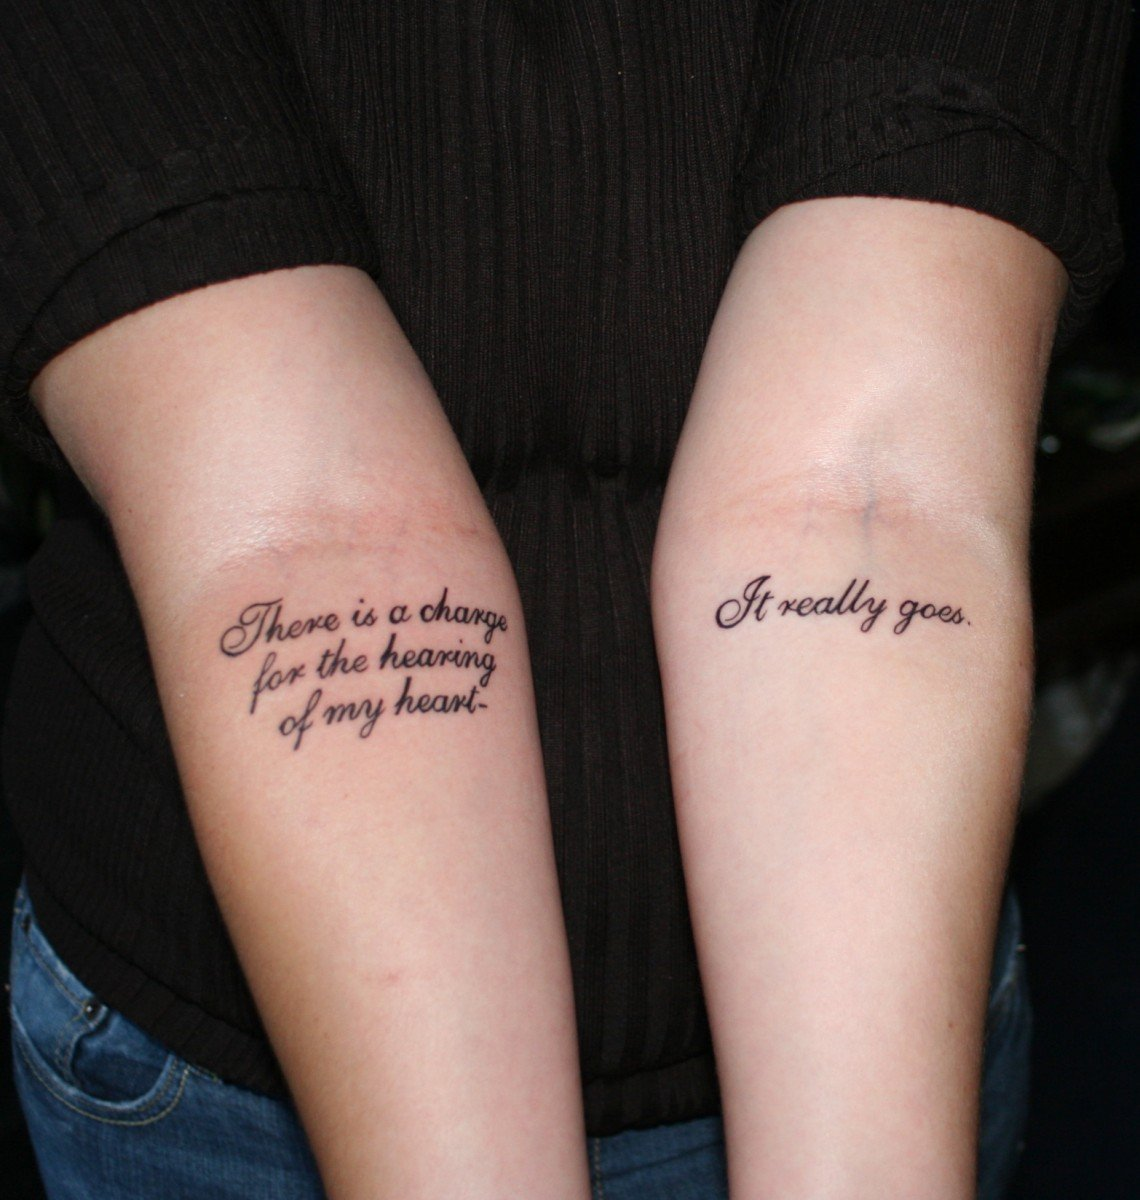 45a6640cc 13 Meaningful Tattoo Ideas For Poetry Lovers That Will 'Literary ...